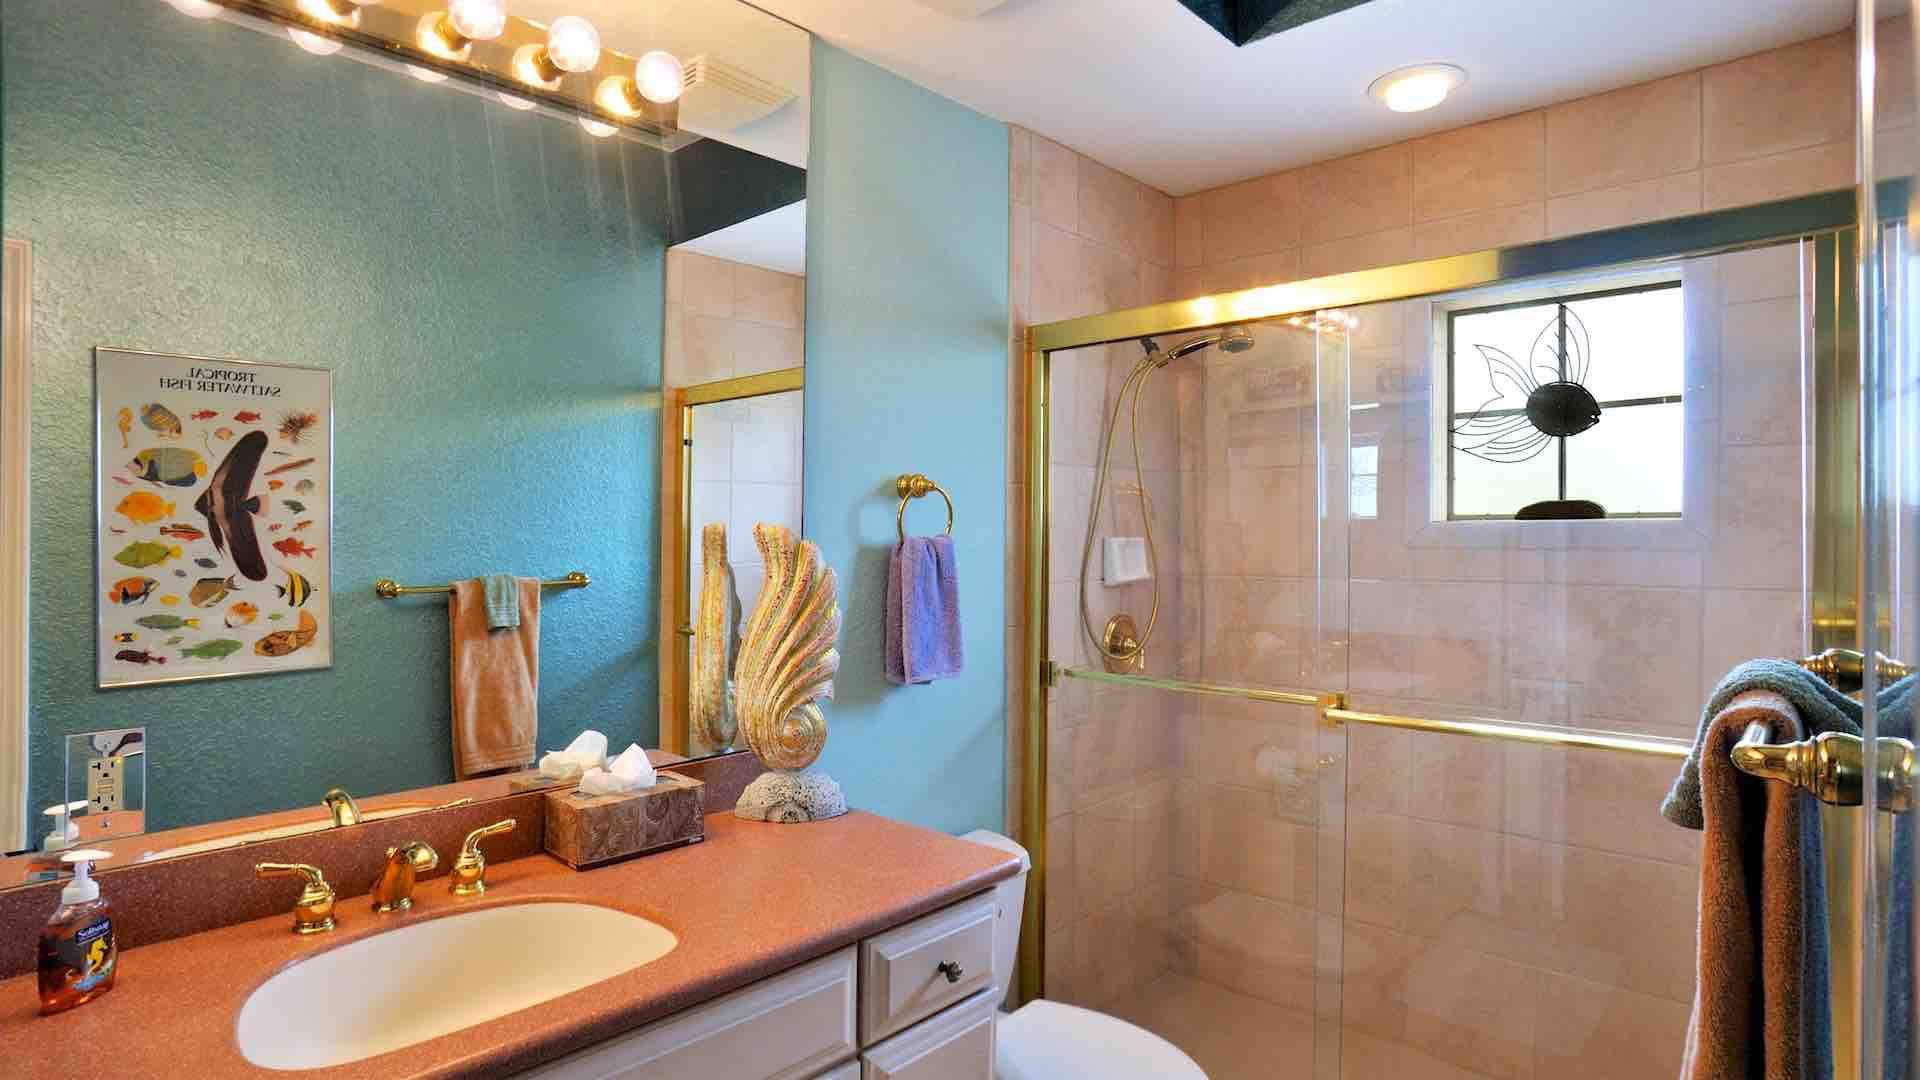 The second bathroom is located between the second and third bedrooms...